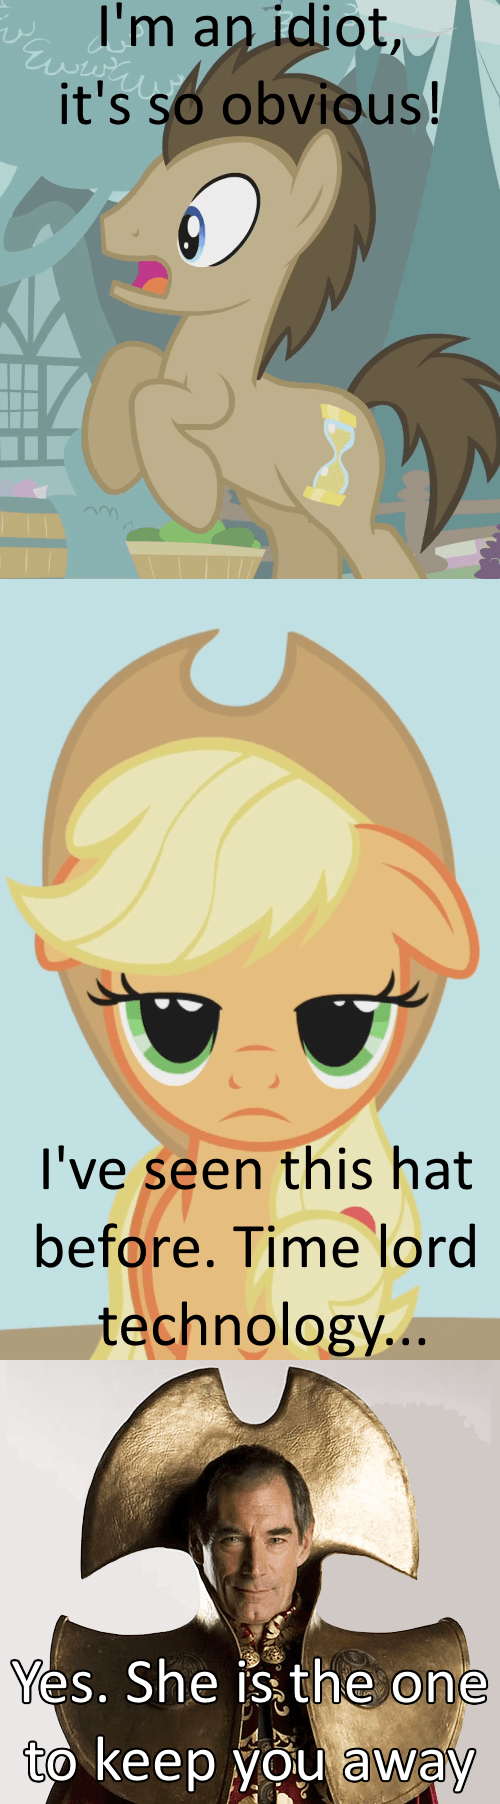 applejack doctor whooves Time lord bigger on the inside - 8409938944